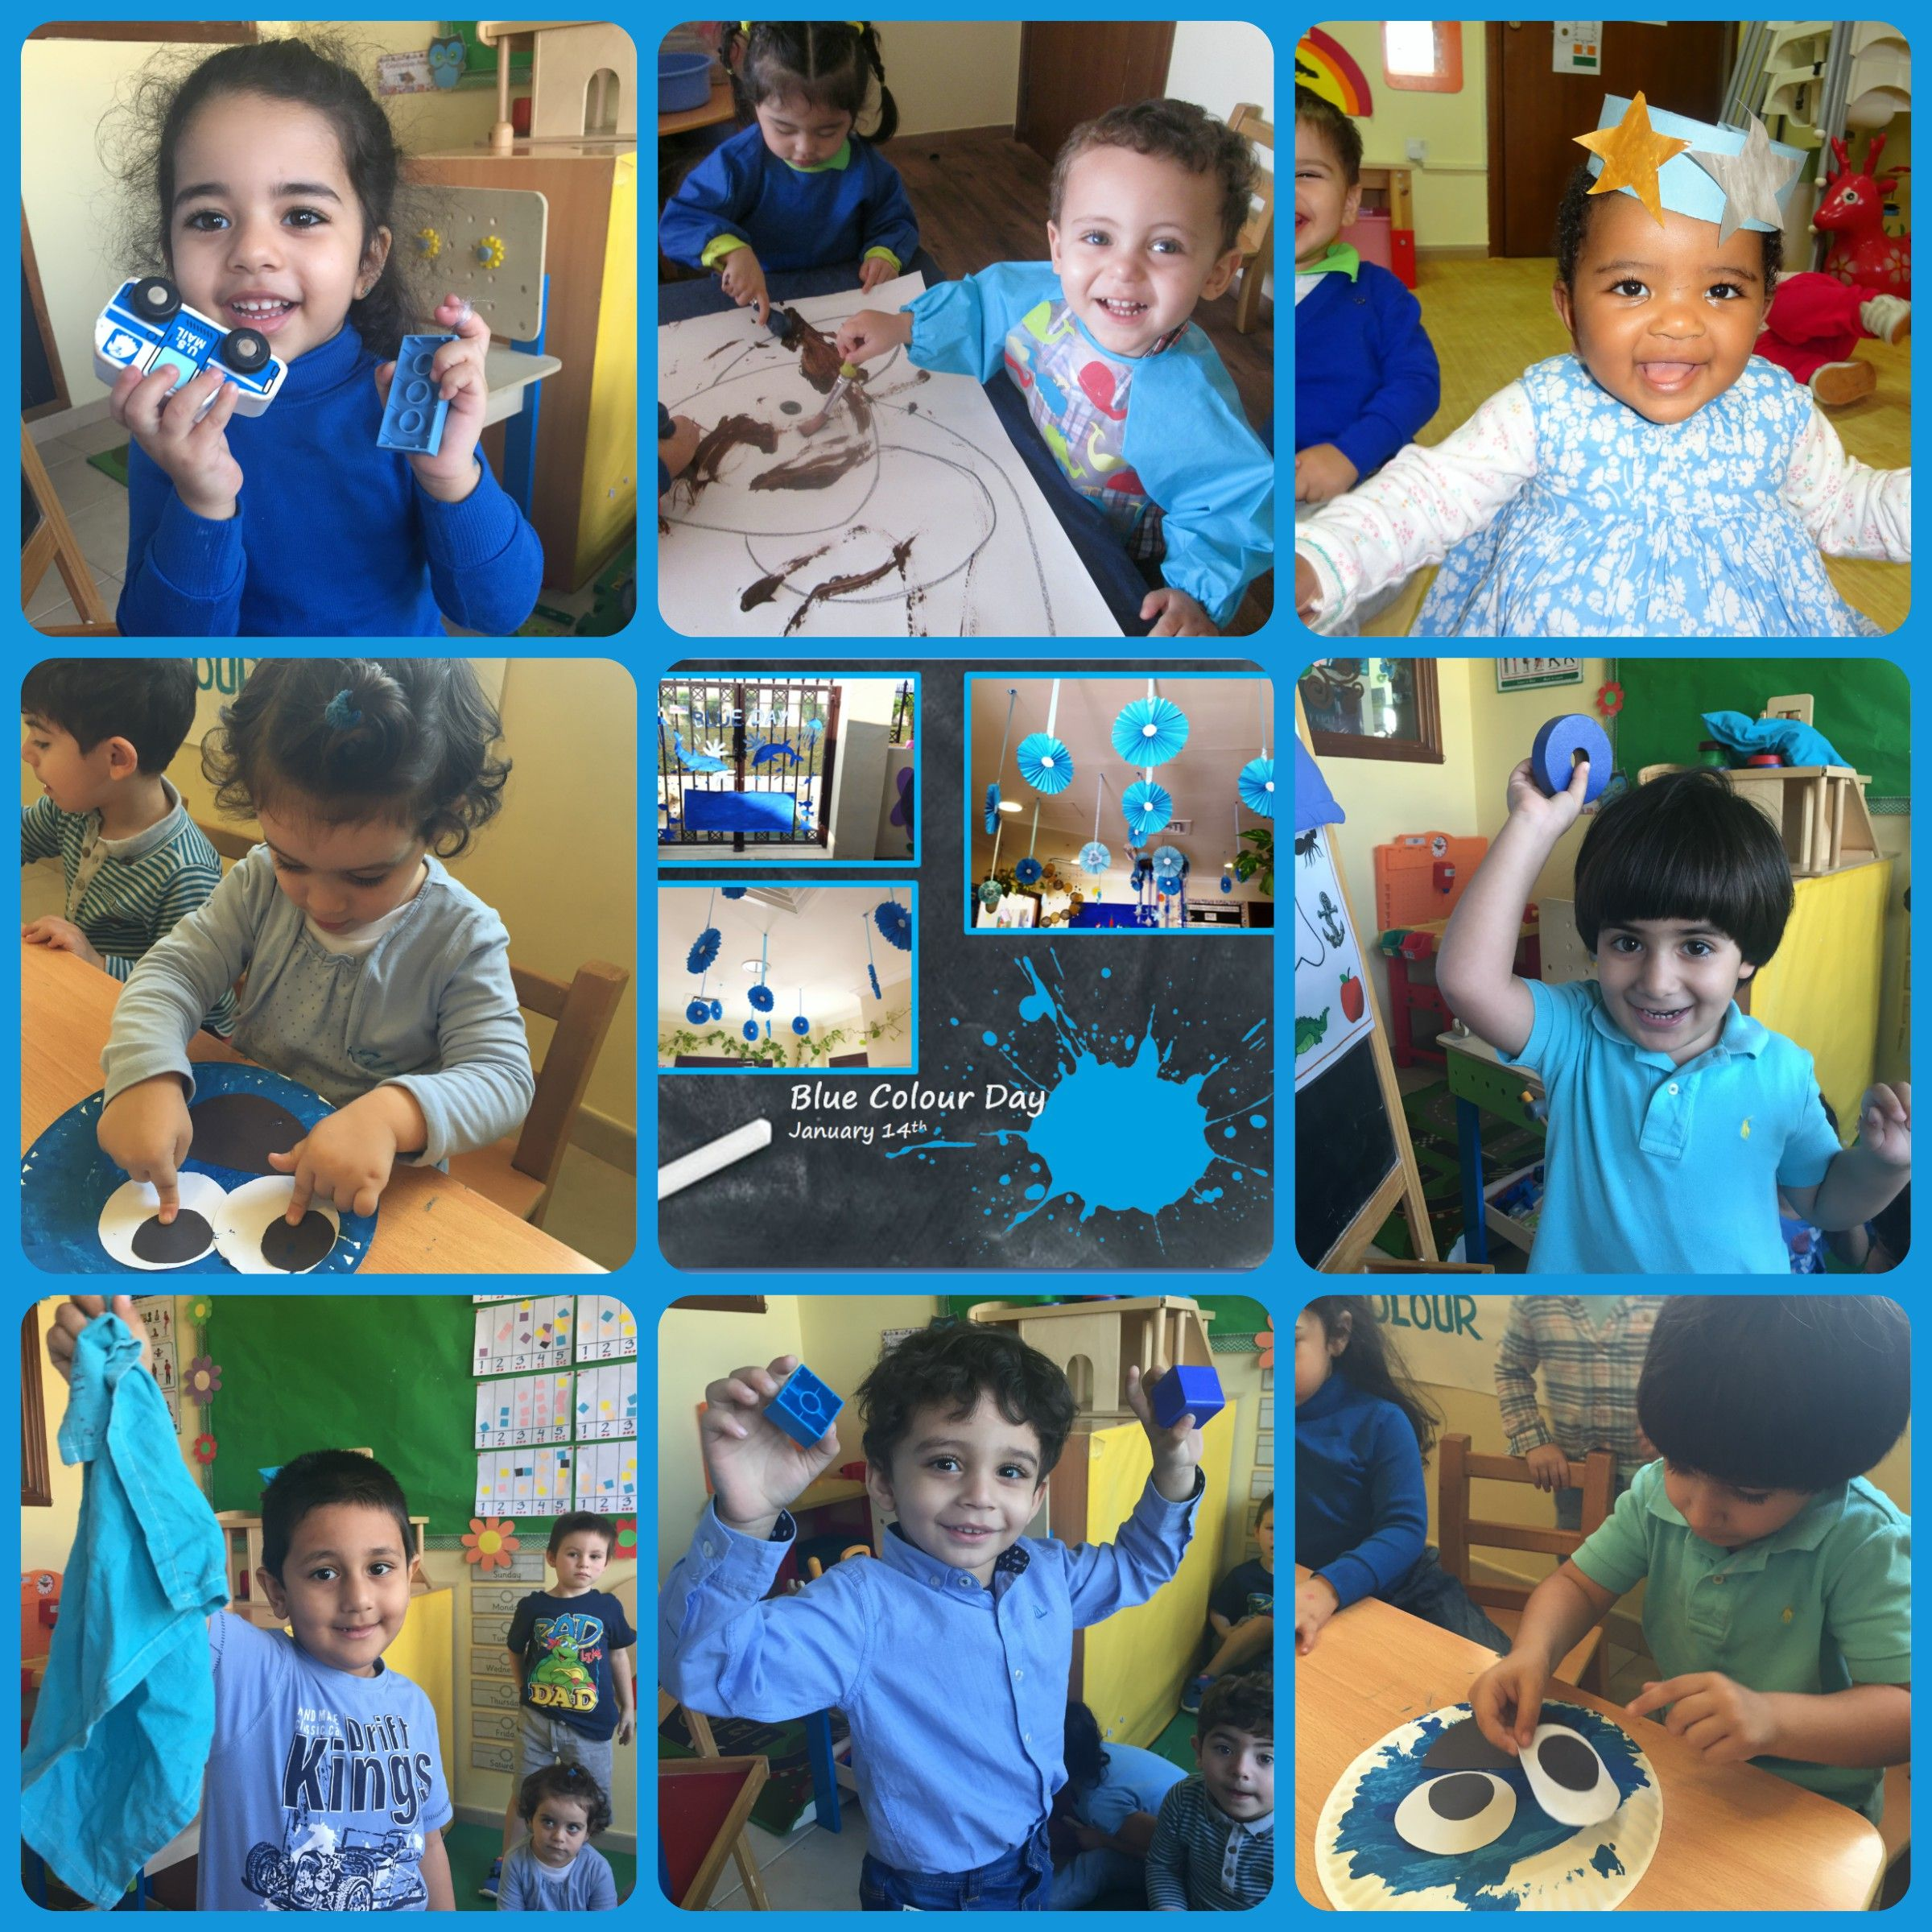 We Love Having Nursery Colour Days Where All The Children Come To Preschool Dressed In That Colour And Enjoy Games And Acti Nursery Colors Blue Color Preschool